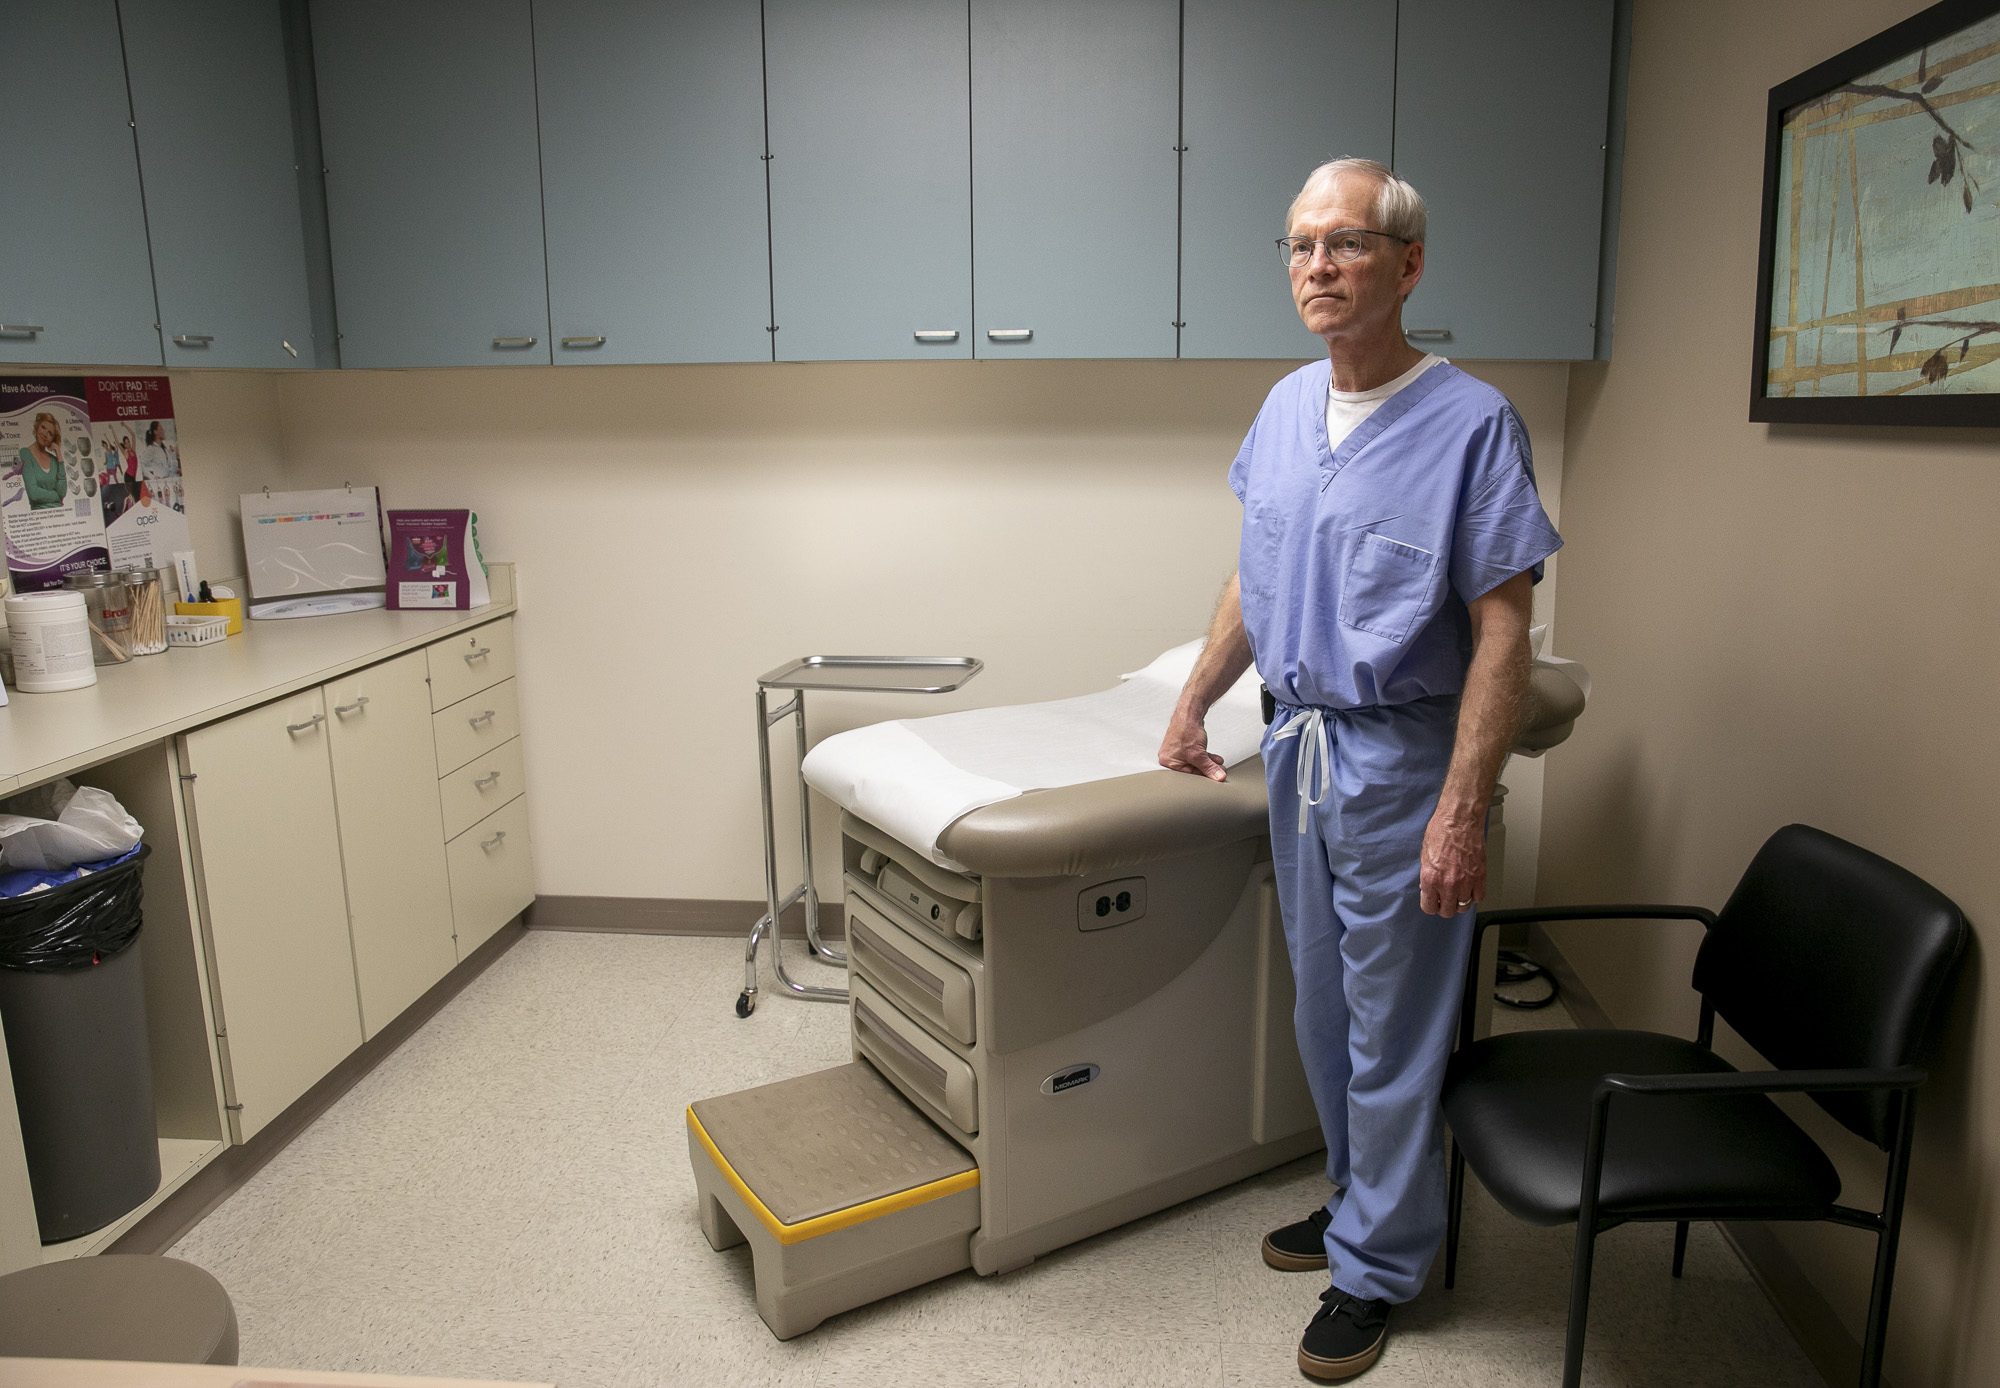 Dr. George Scott in one of five examination rooms in his Manteca clinic. Dr. Scott's private OB/GYN practice is being forced to move to a smaller clinic space after their landlord more than tripled their rent in early March. Photo by Anne Wernikoff for CalMatters